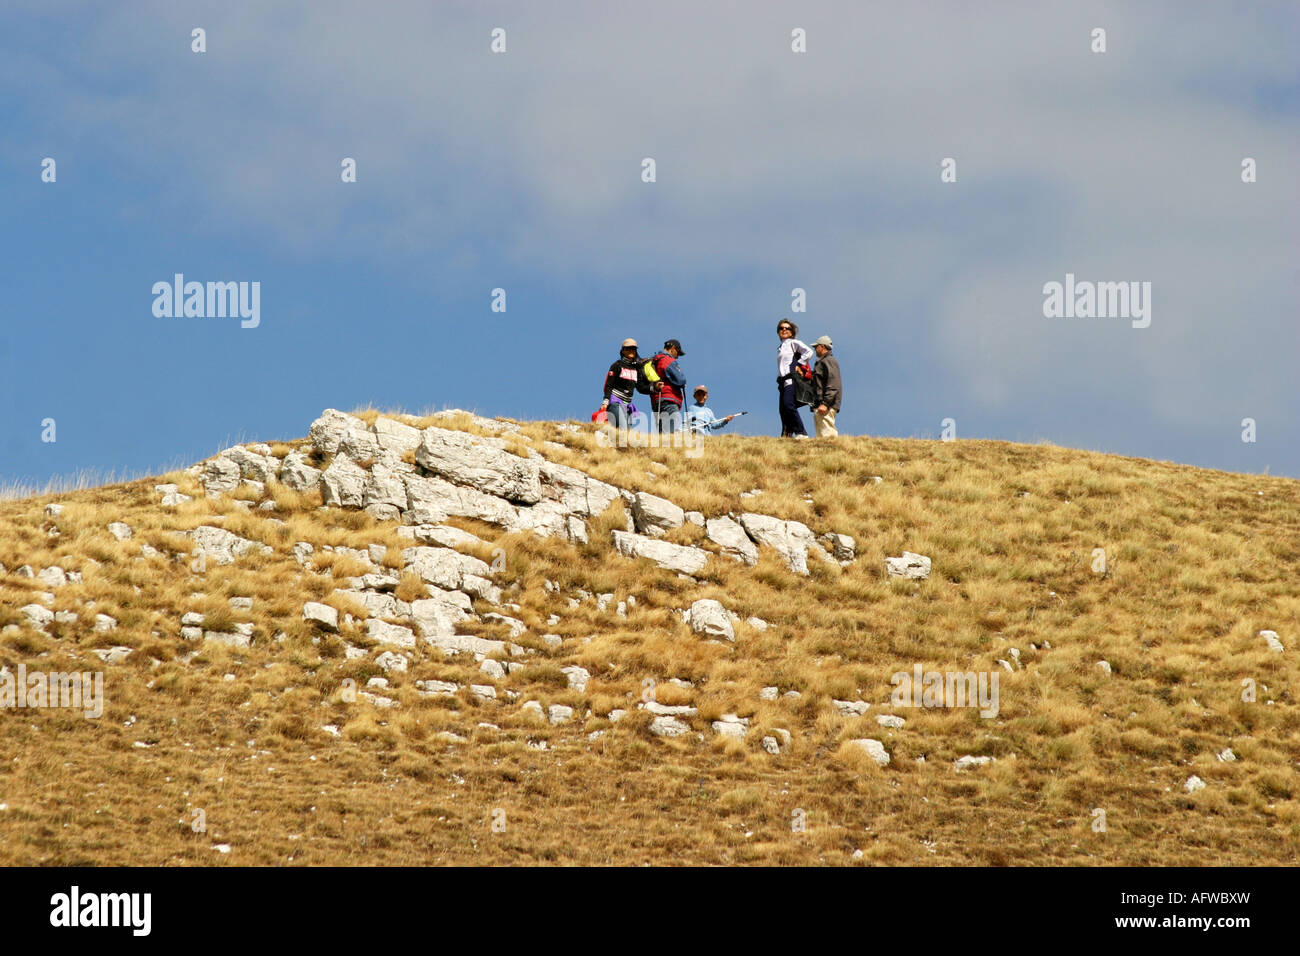 hikers enjoy Glorious colour at Sasso Tetto  mountain in the Sibillini National Park,Le Marche Italy Stock Photo